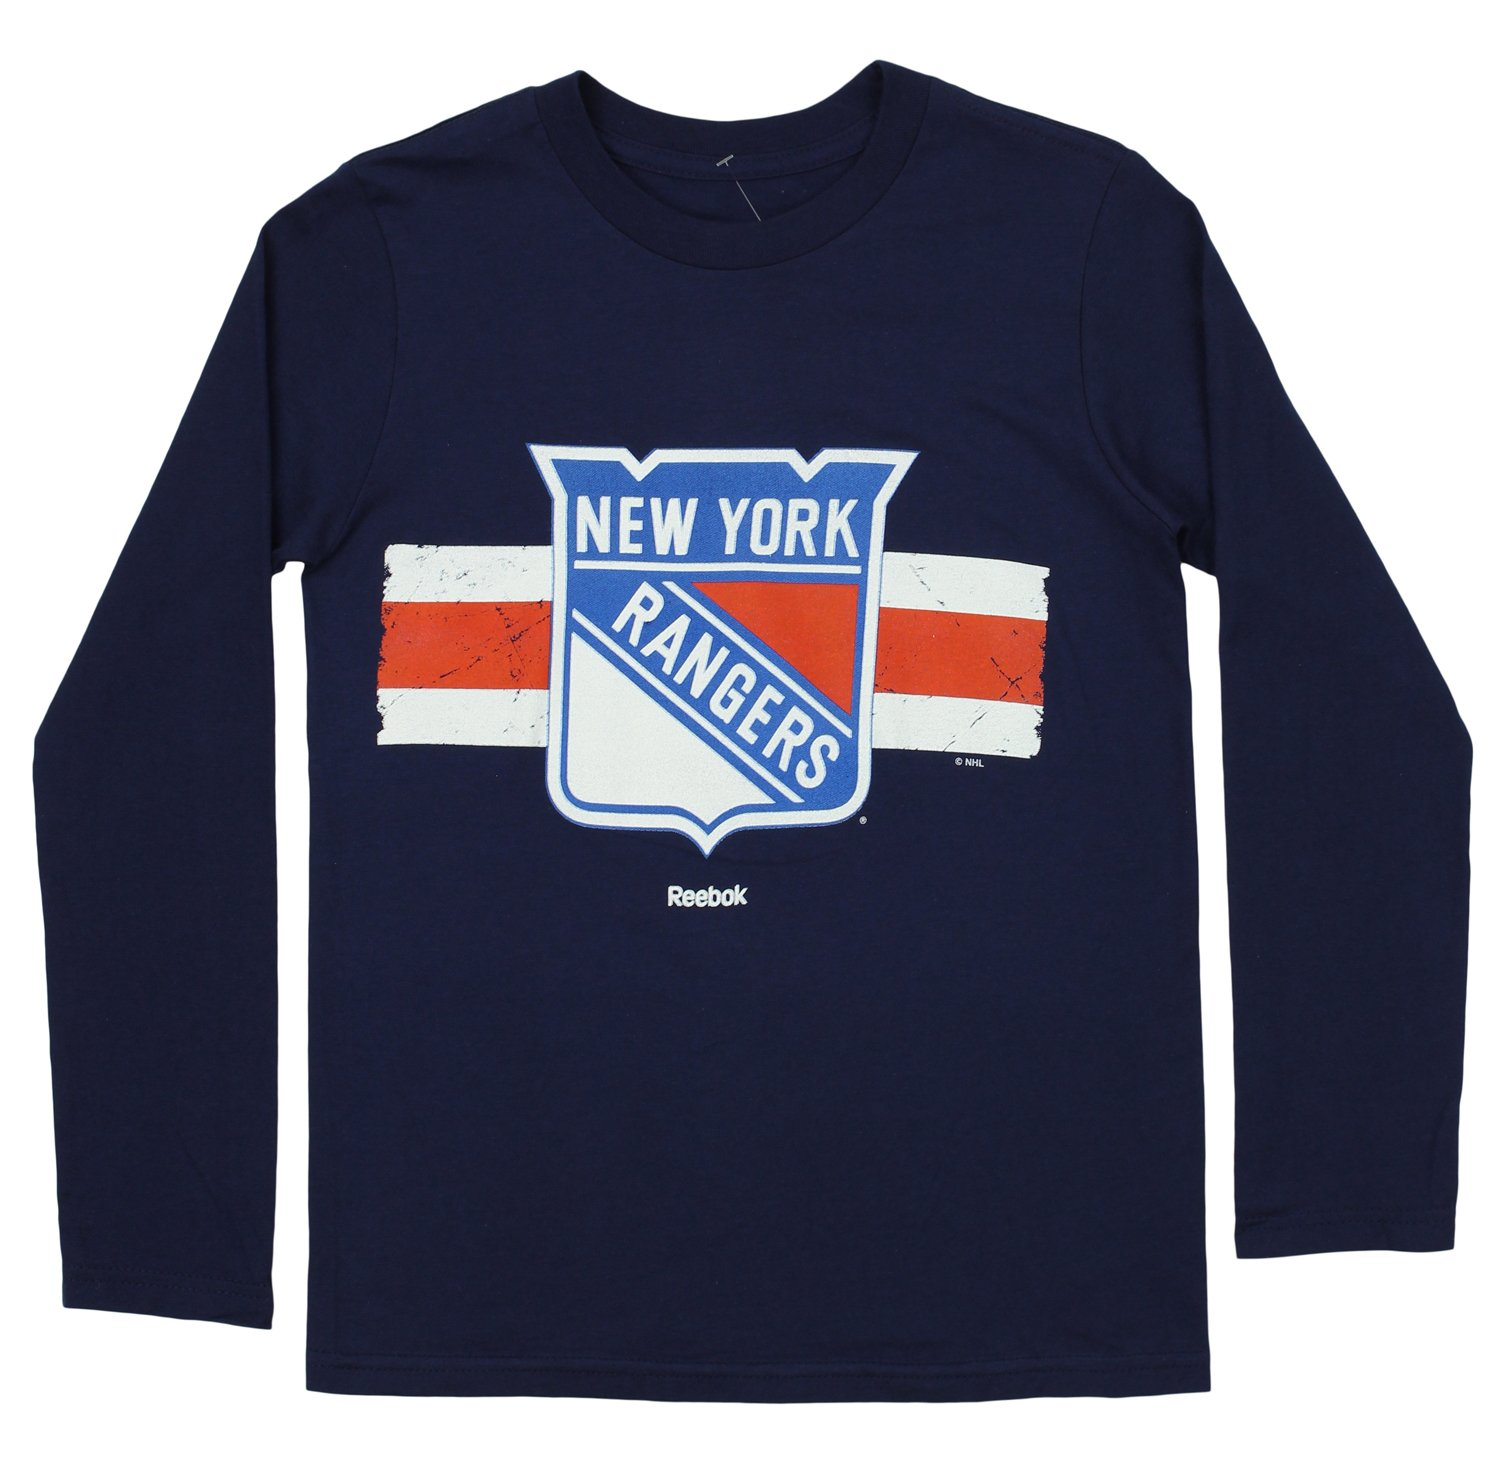 NHL Youth's New York Rangers Long Sleeve Honor Code UB Tee, Navy Outerstuff